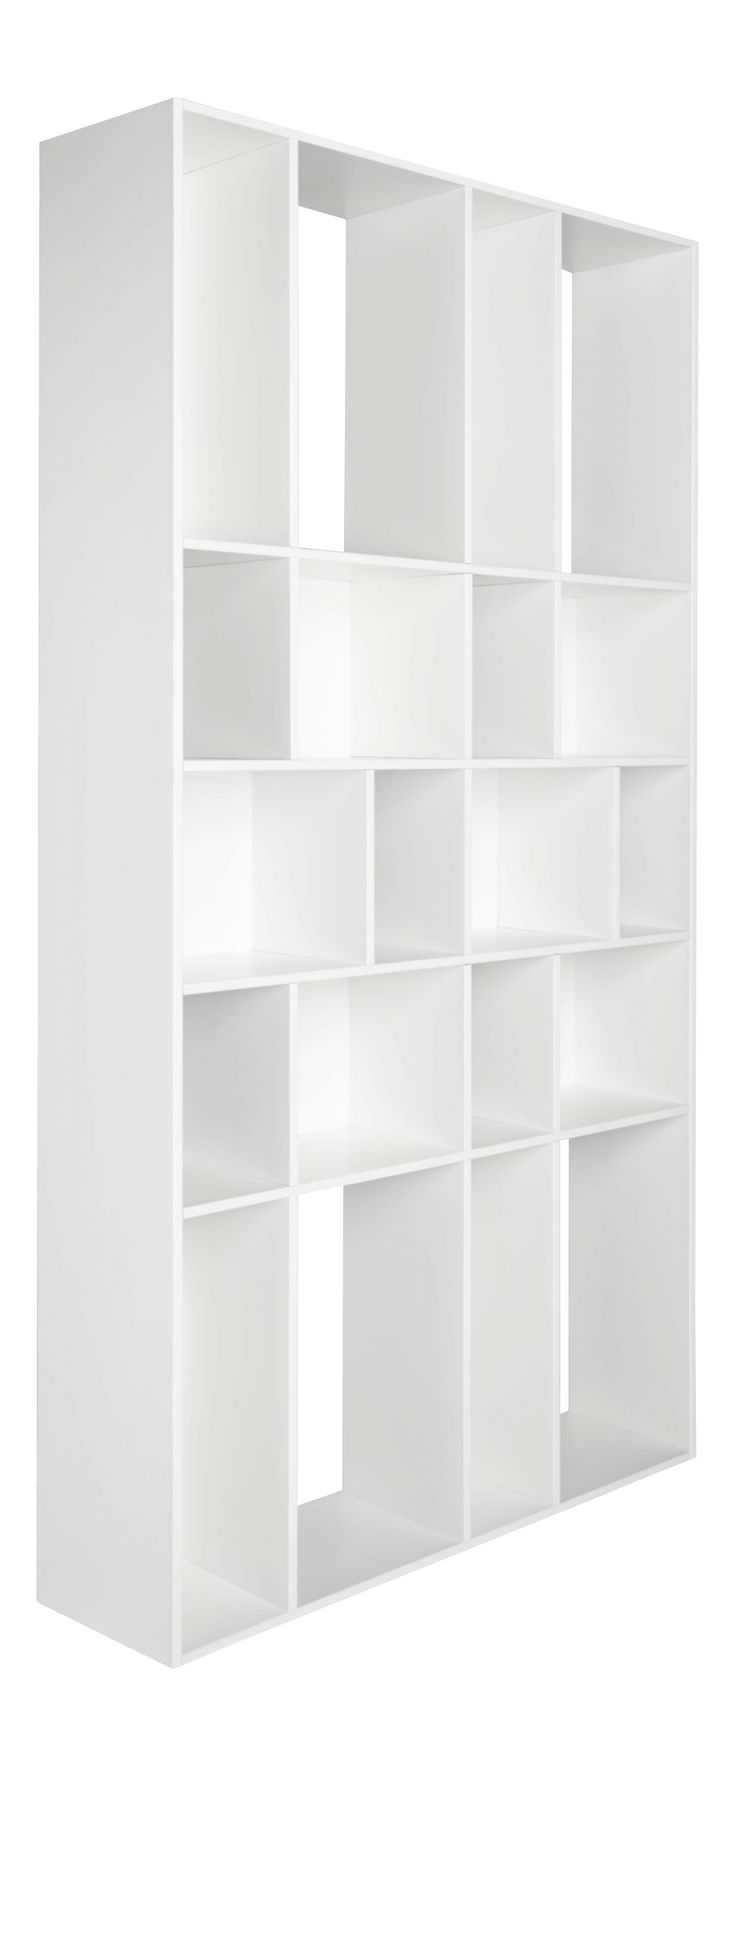 les 25 meilleures id es de la cat gorie biblioth que blanc. Black Bedroom Furniture Sets. Home Design Ideas